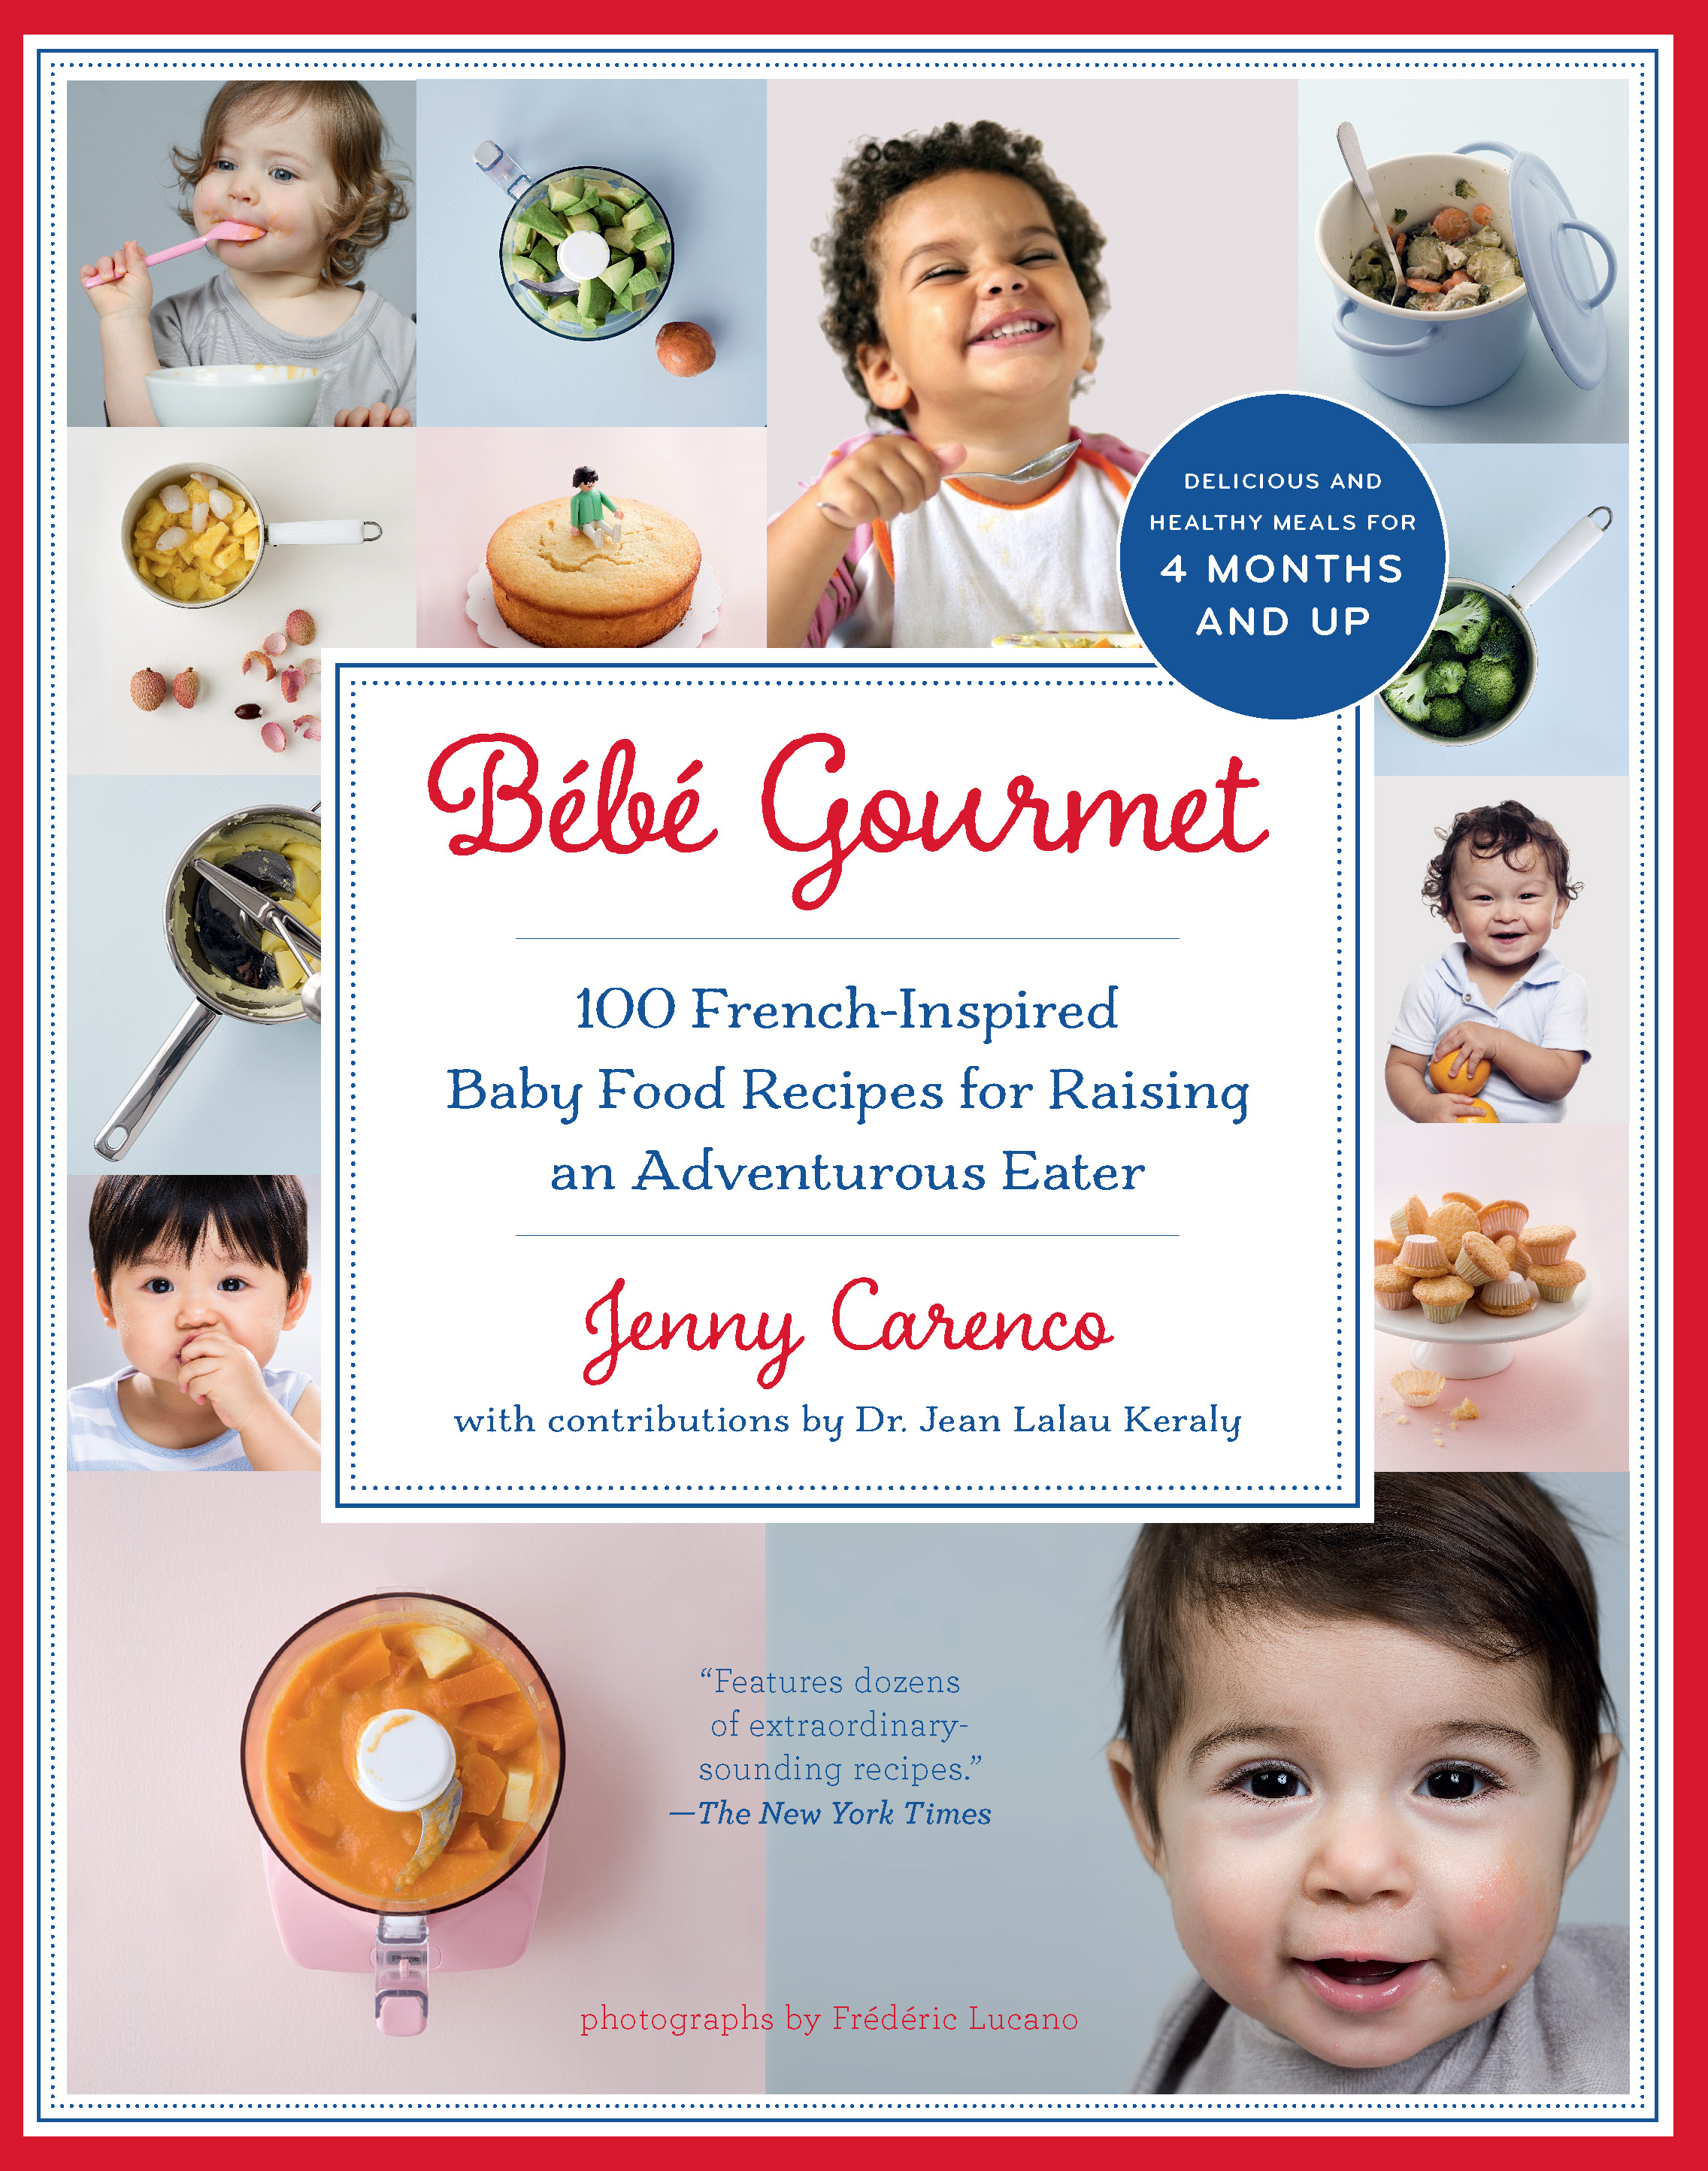 Bébé Gourmet 100 French-Inspired Baby Food Recipes For Raising an Adventurous Eater